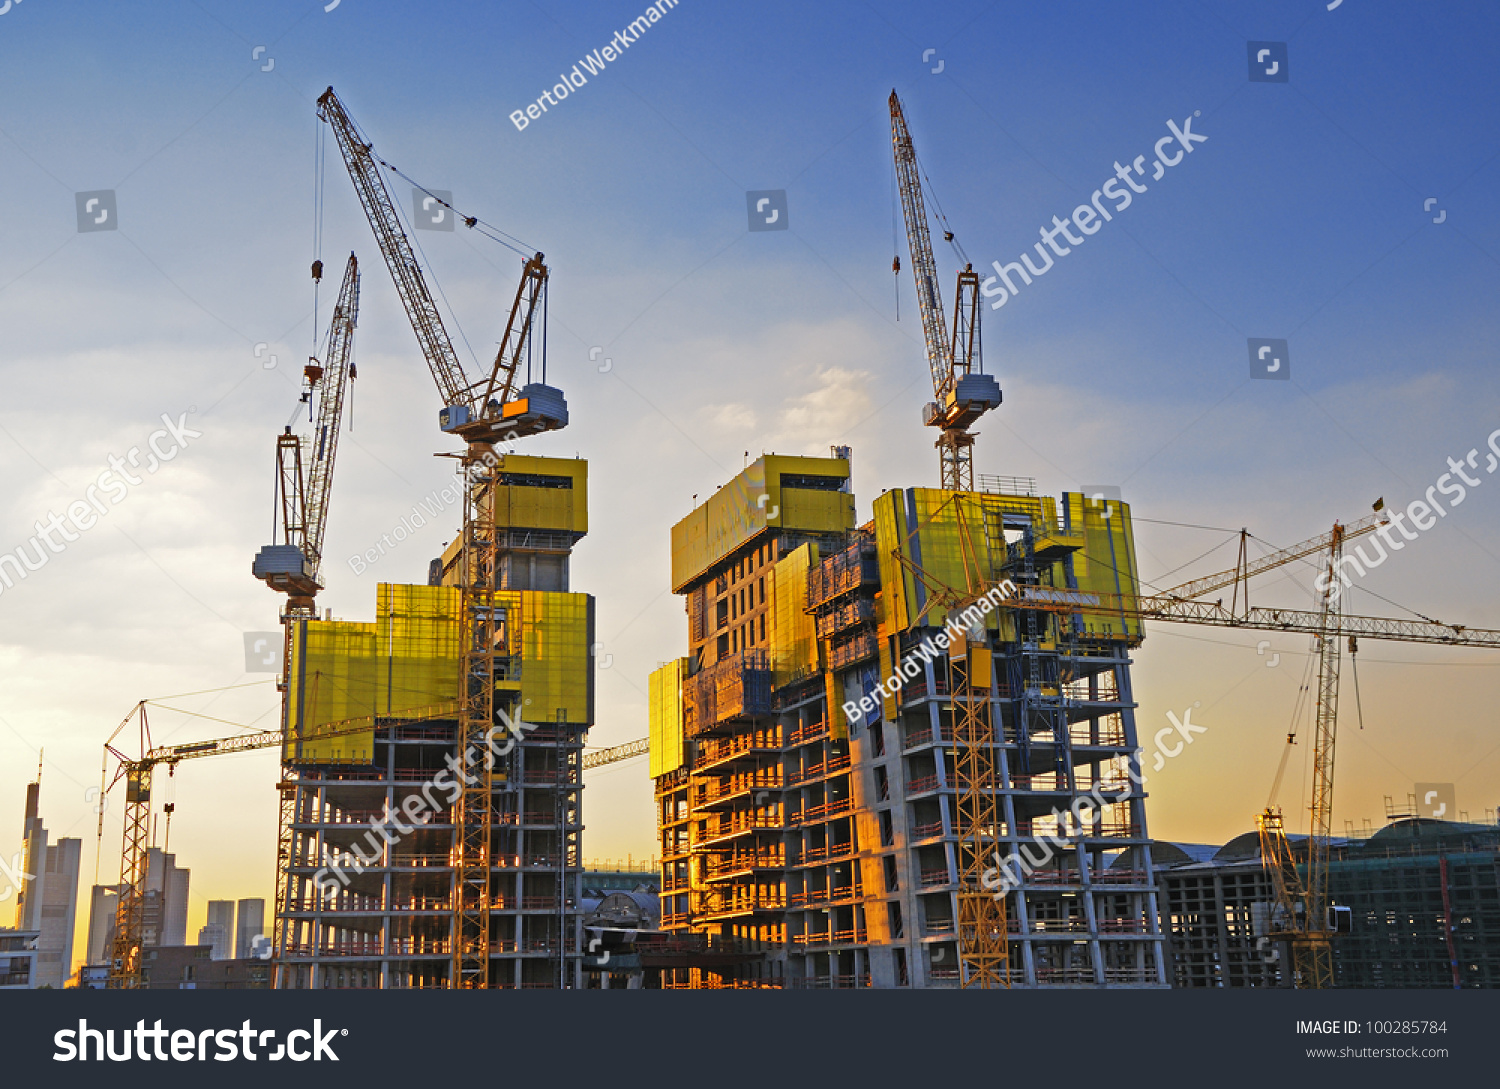 Large Construction Cranes : Big construction site stock photo